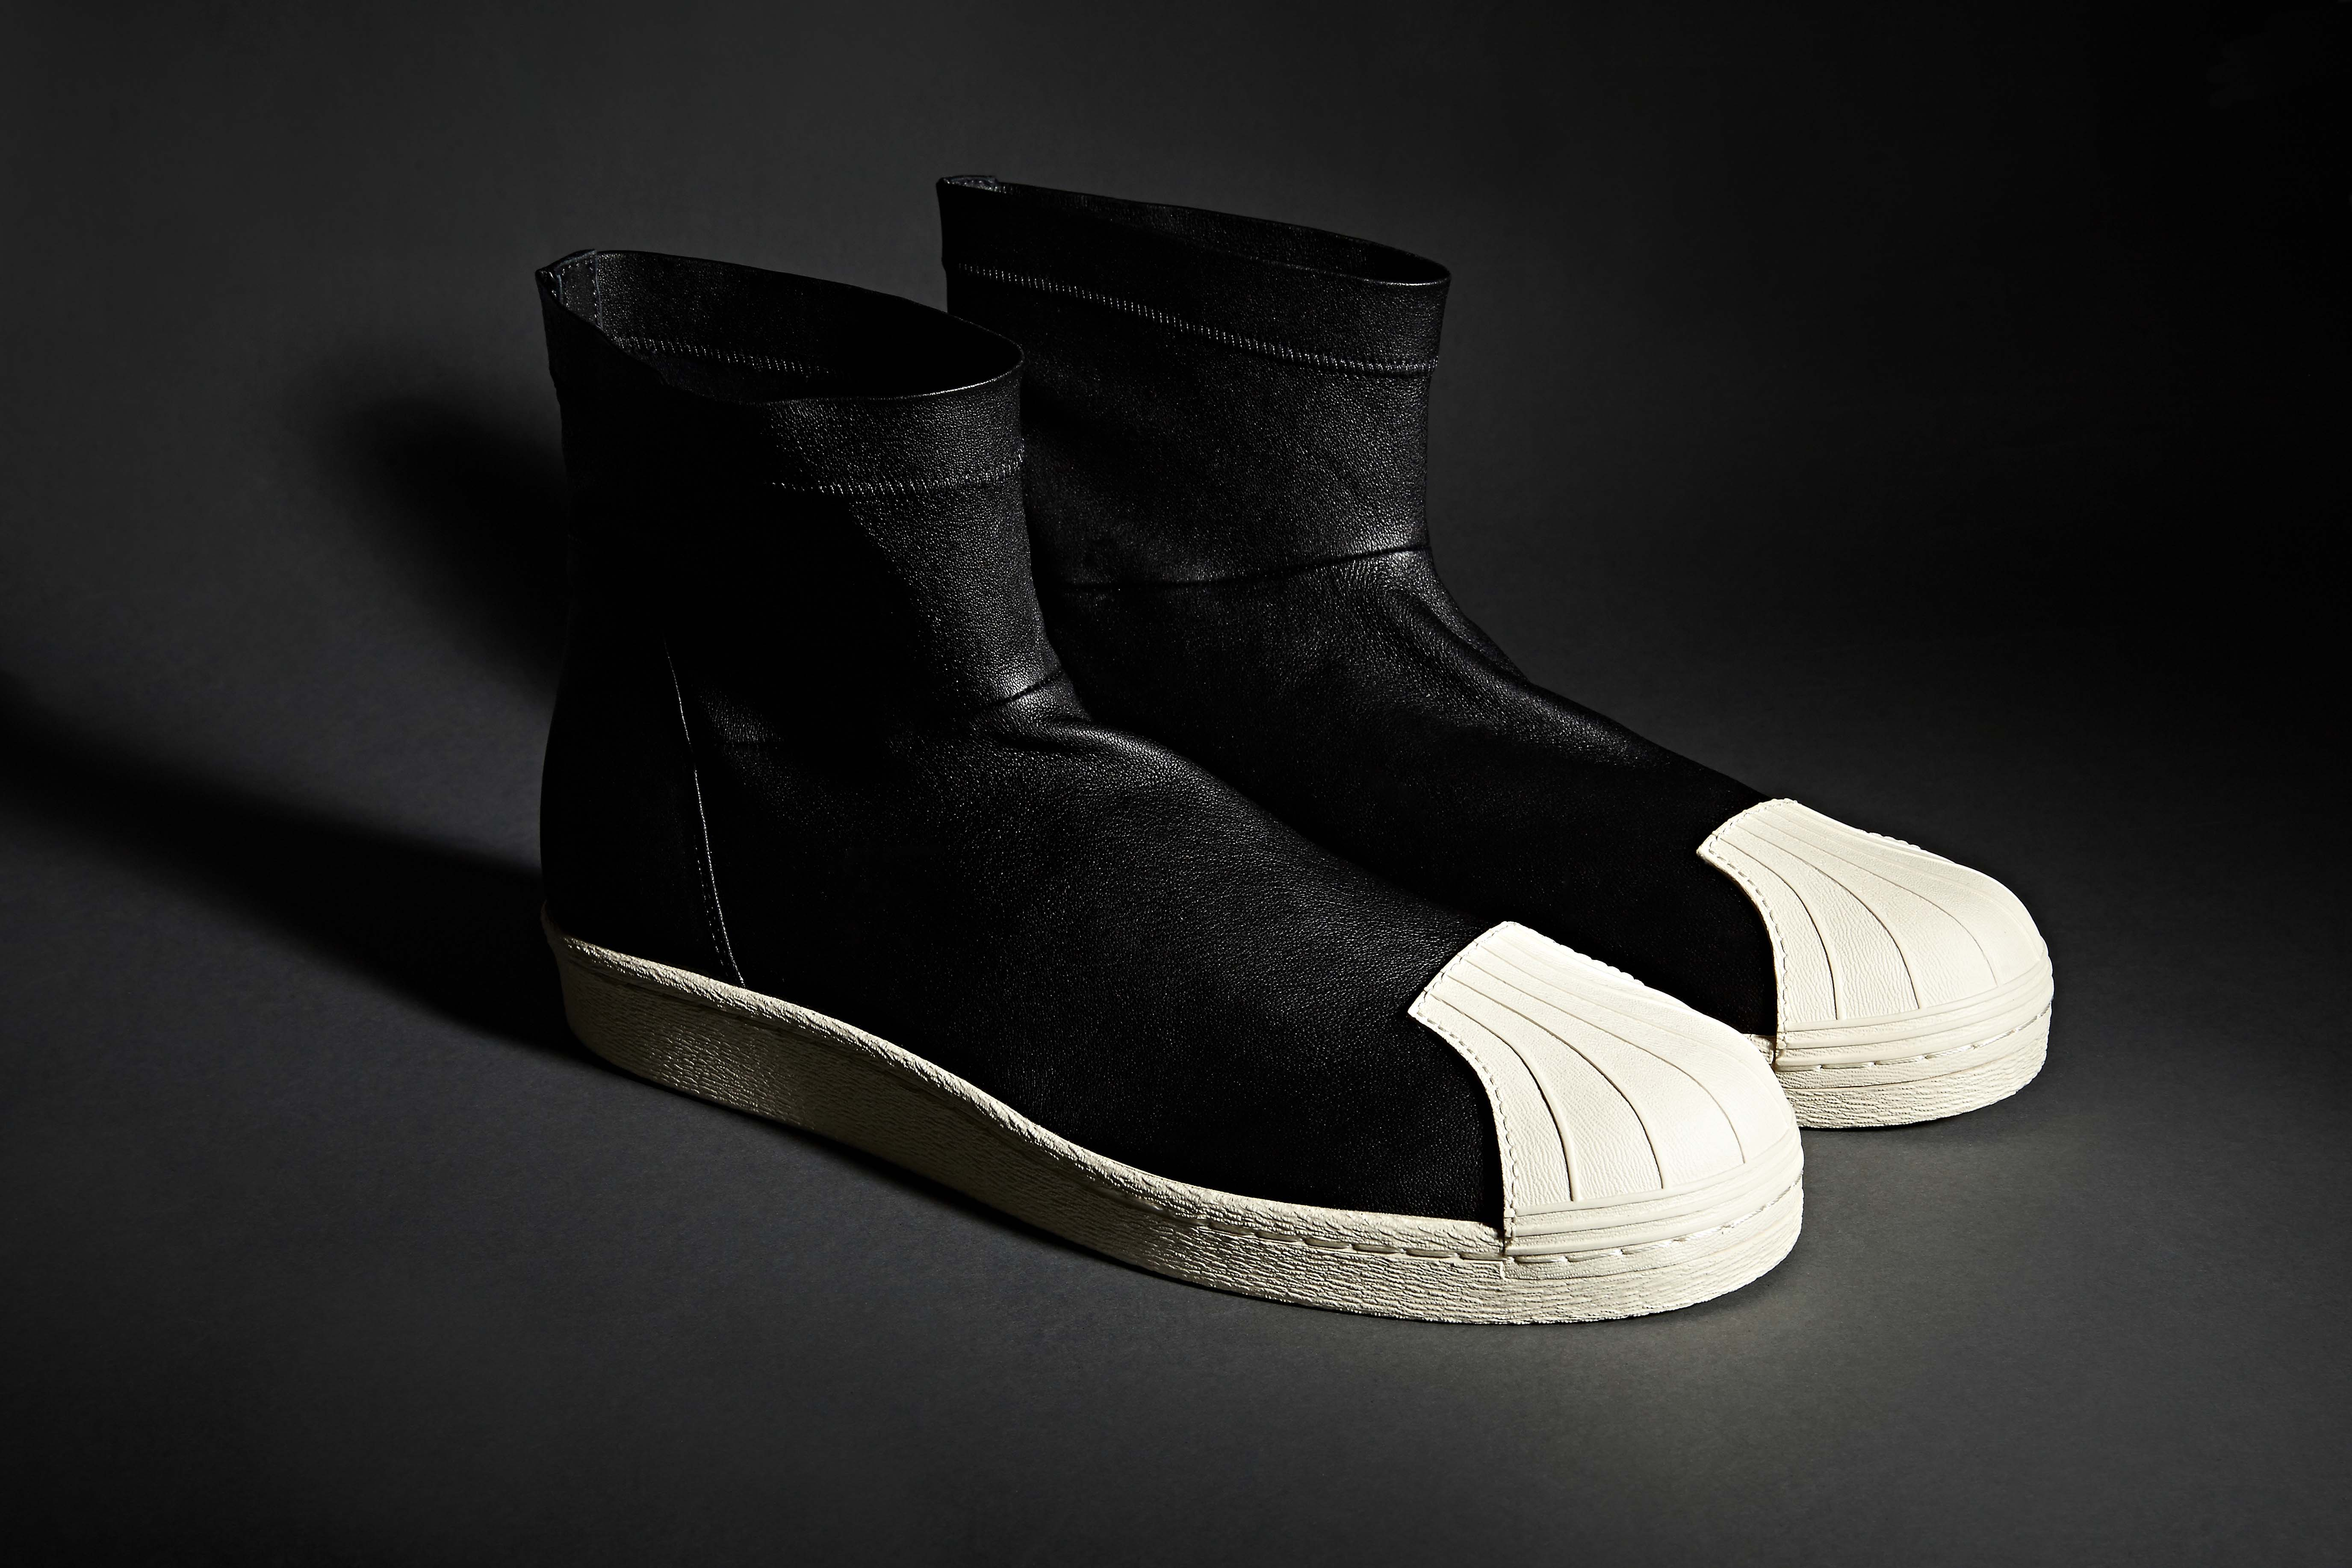 Rick Owens x Adidas Superstar Boot